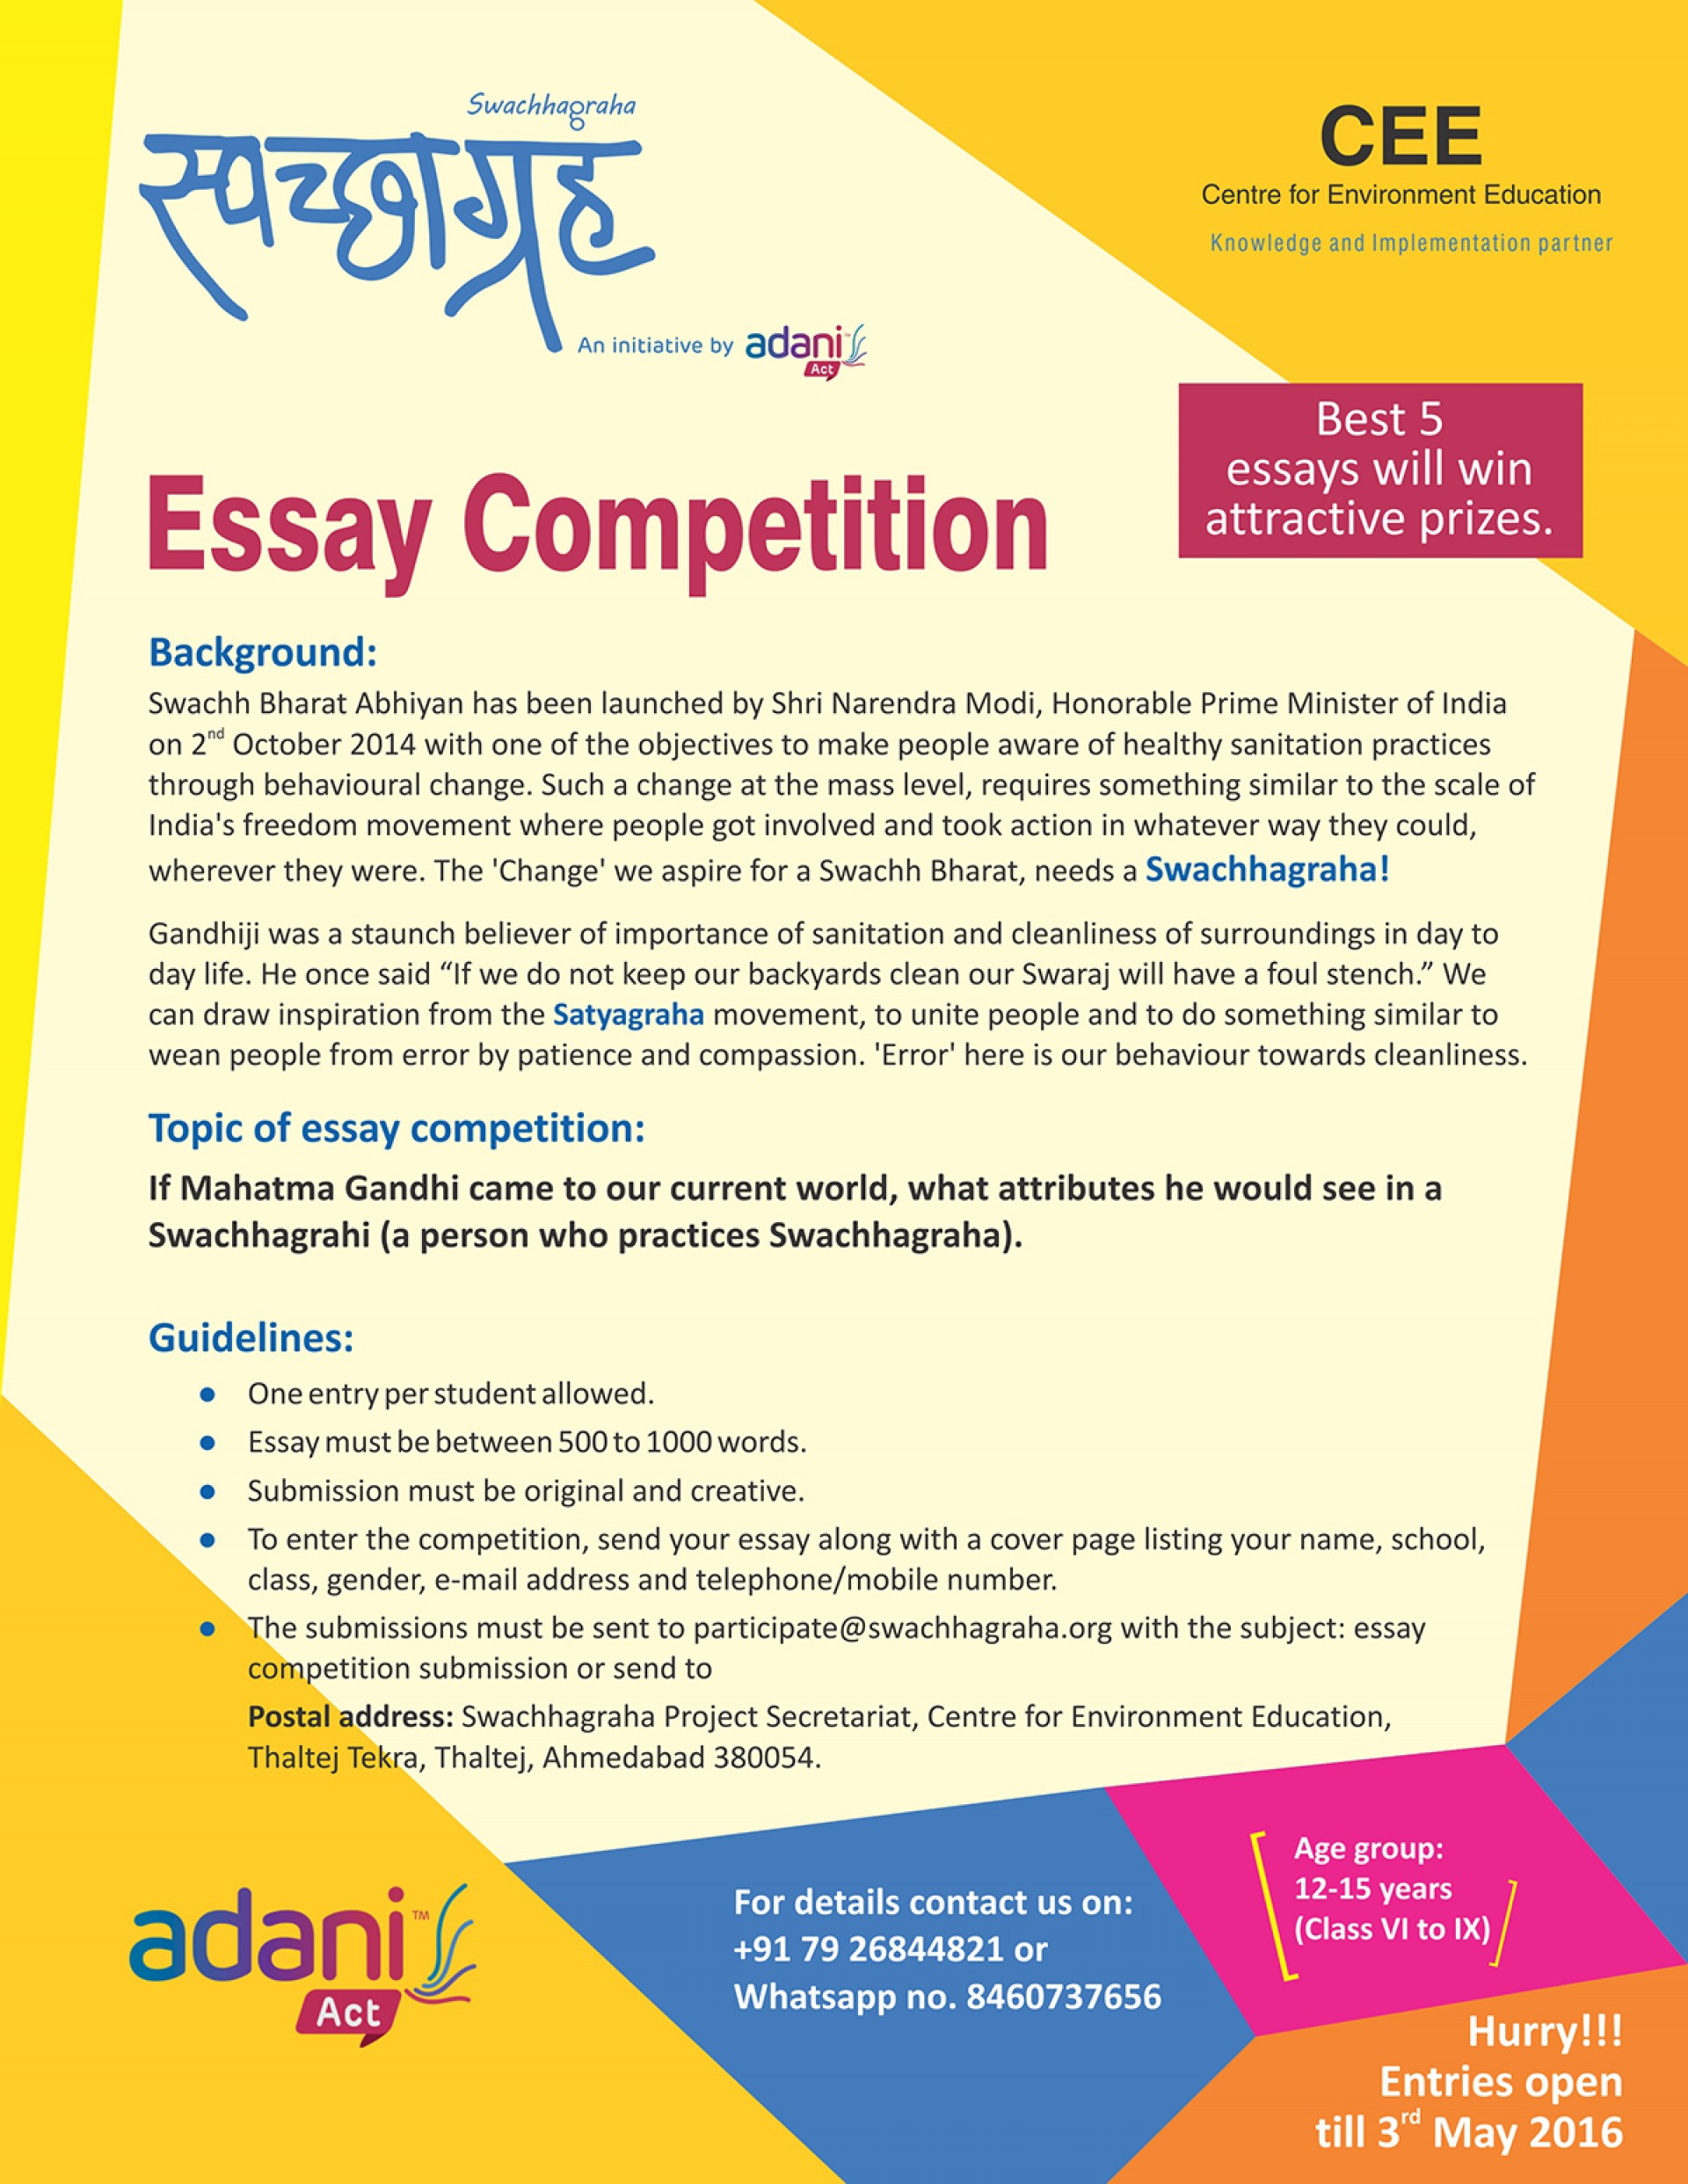 011 20180129171946essay20competition Essay About Cleanliness In School Phenomenal Writing On Premises 1920